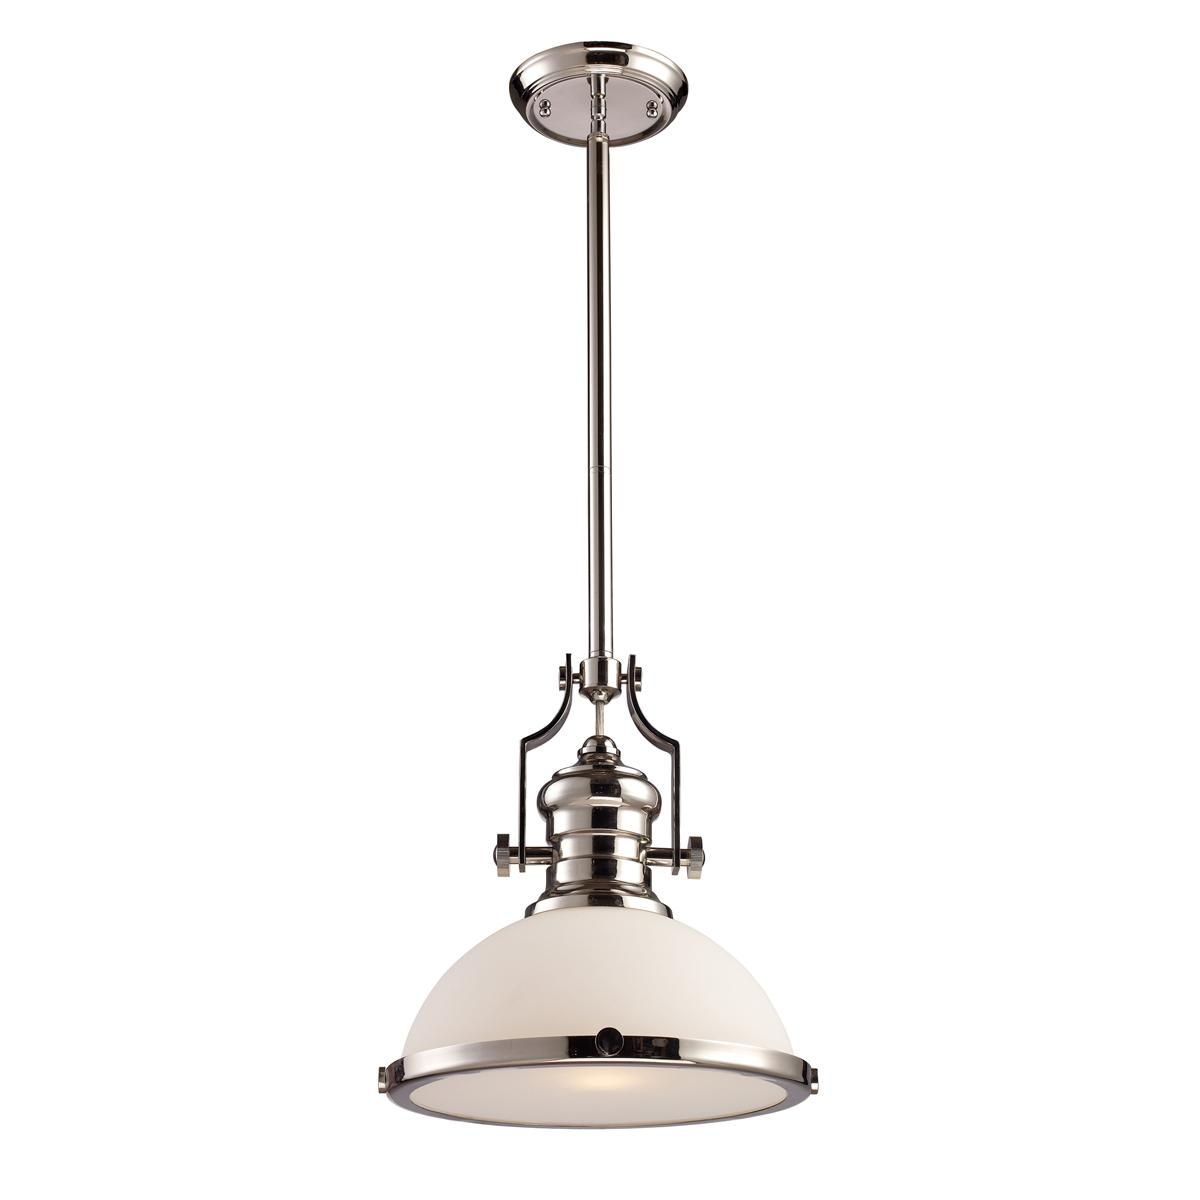 Craftsman Period Pendant - Glass Shade | Has Lighting Ideas intended for Macon 1-Light Single Dome Pendants (Image 13 of 30)